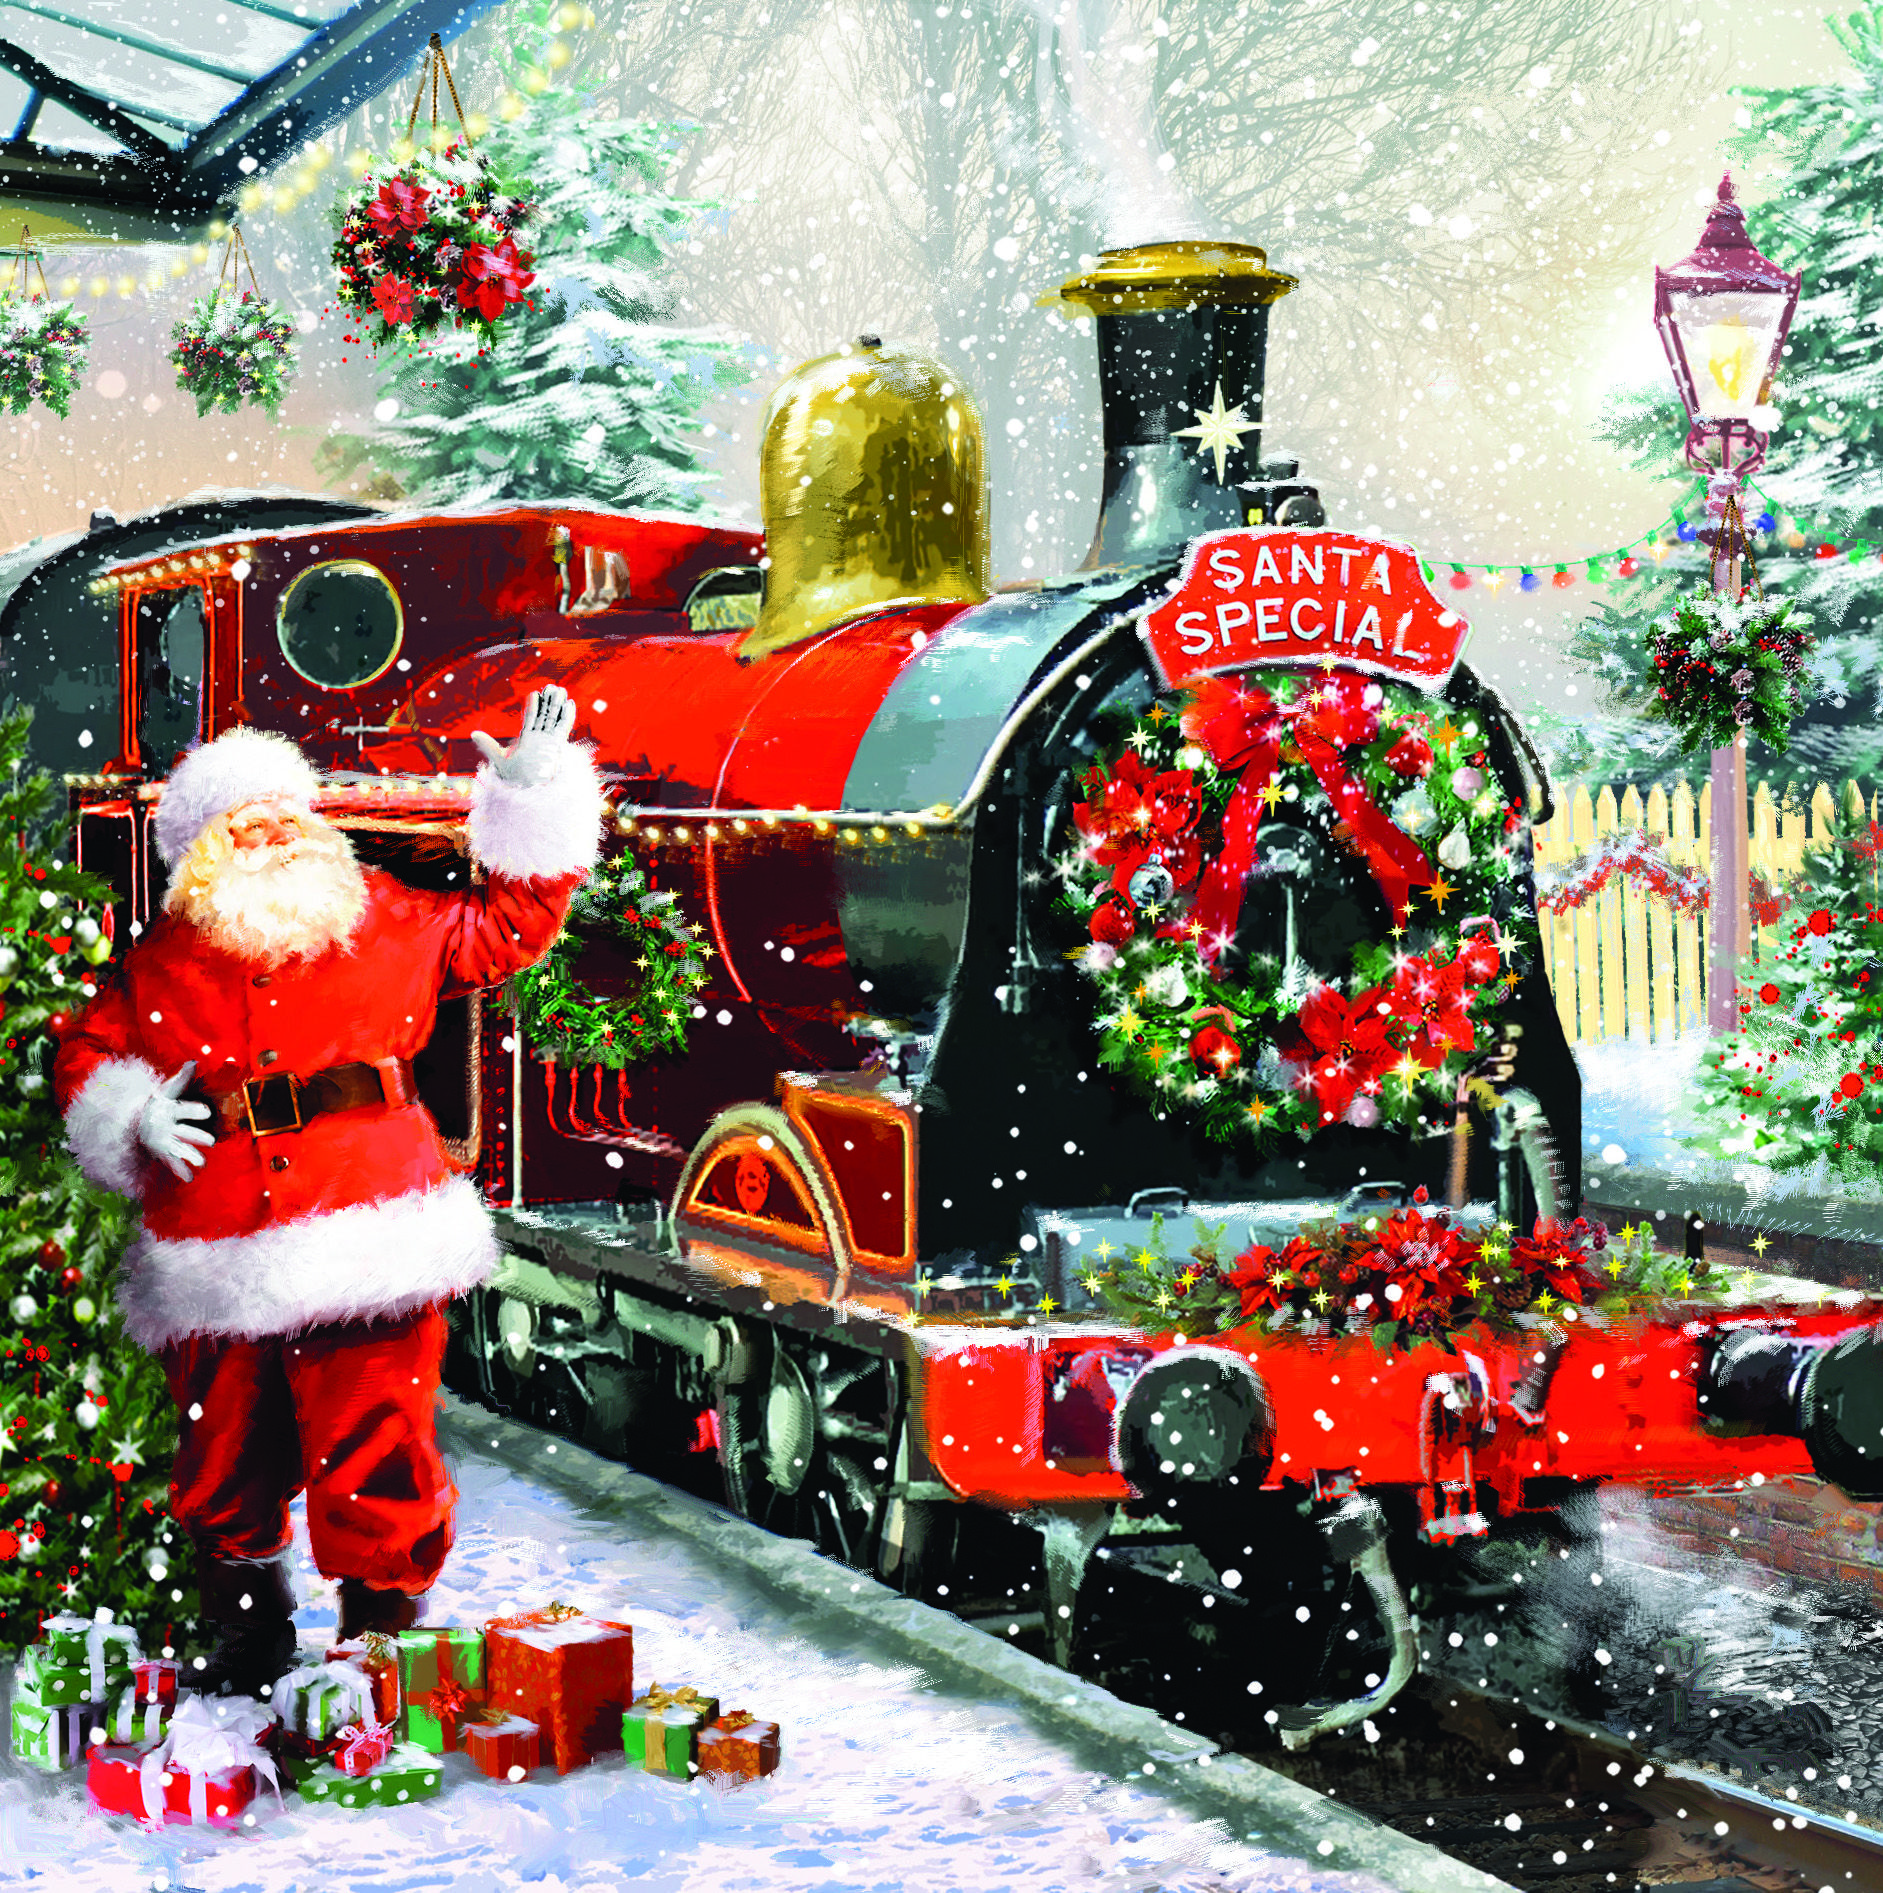 Santa Special Charity Christmas Card Charity christmas